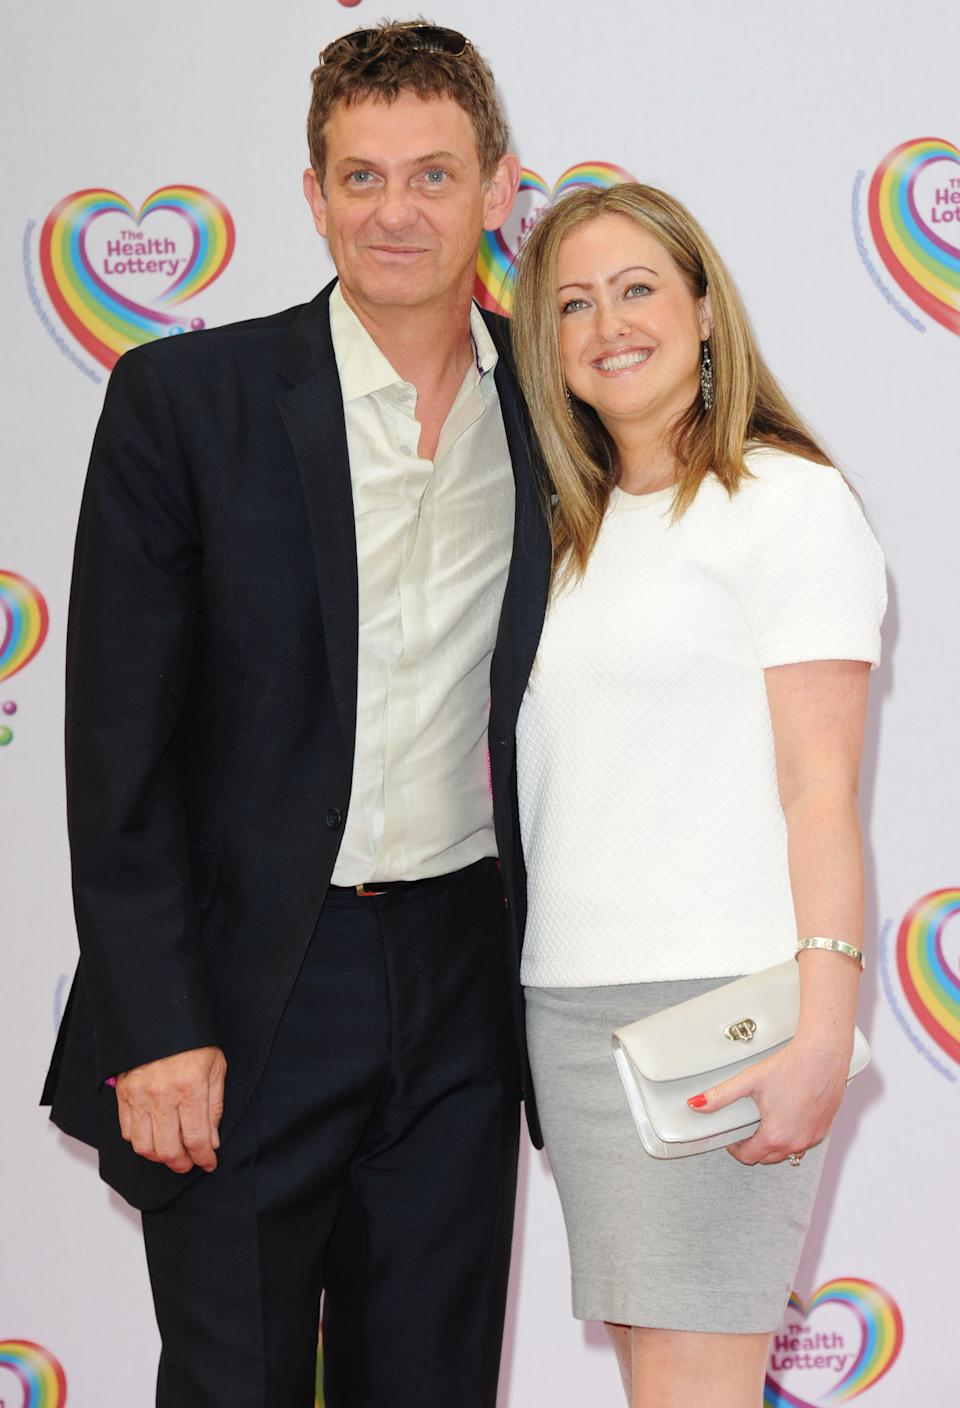 Matthew Wright (L) and Amelia Wright attends the Health Lottery tea party at The Savoy Hotel on June 2, 2014 in London, England.  (Photo by Stuart C. Wilson/Getty Images)